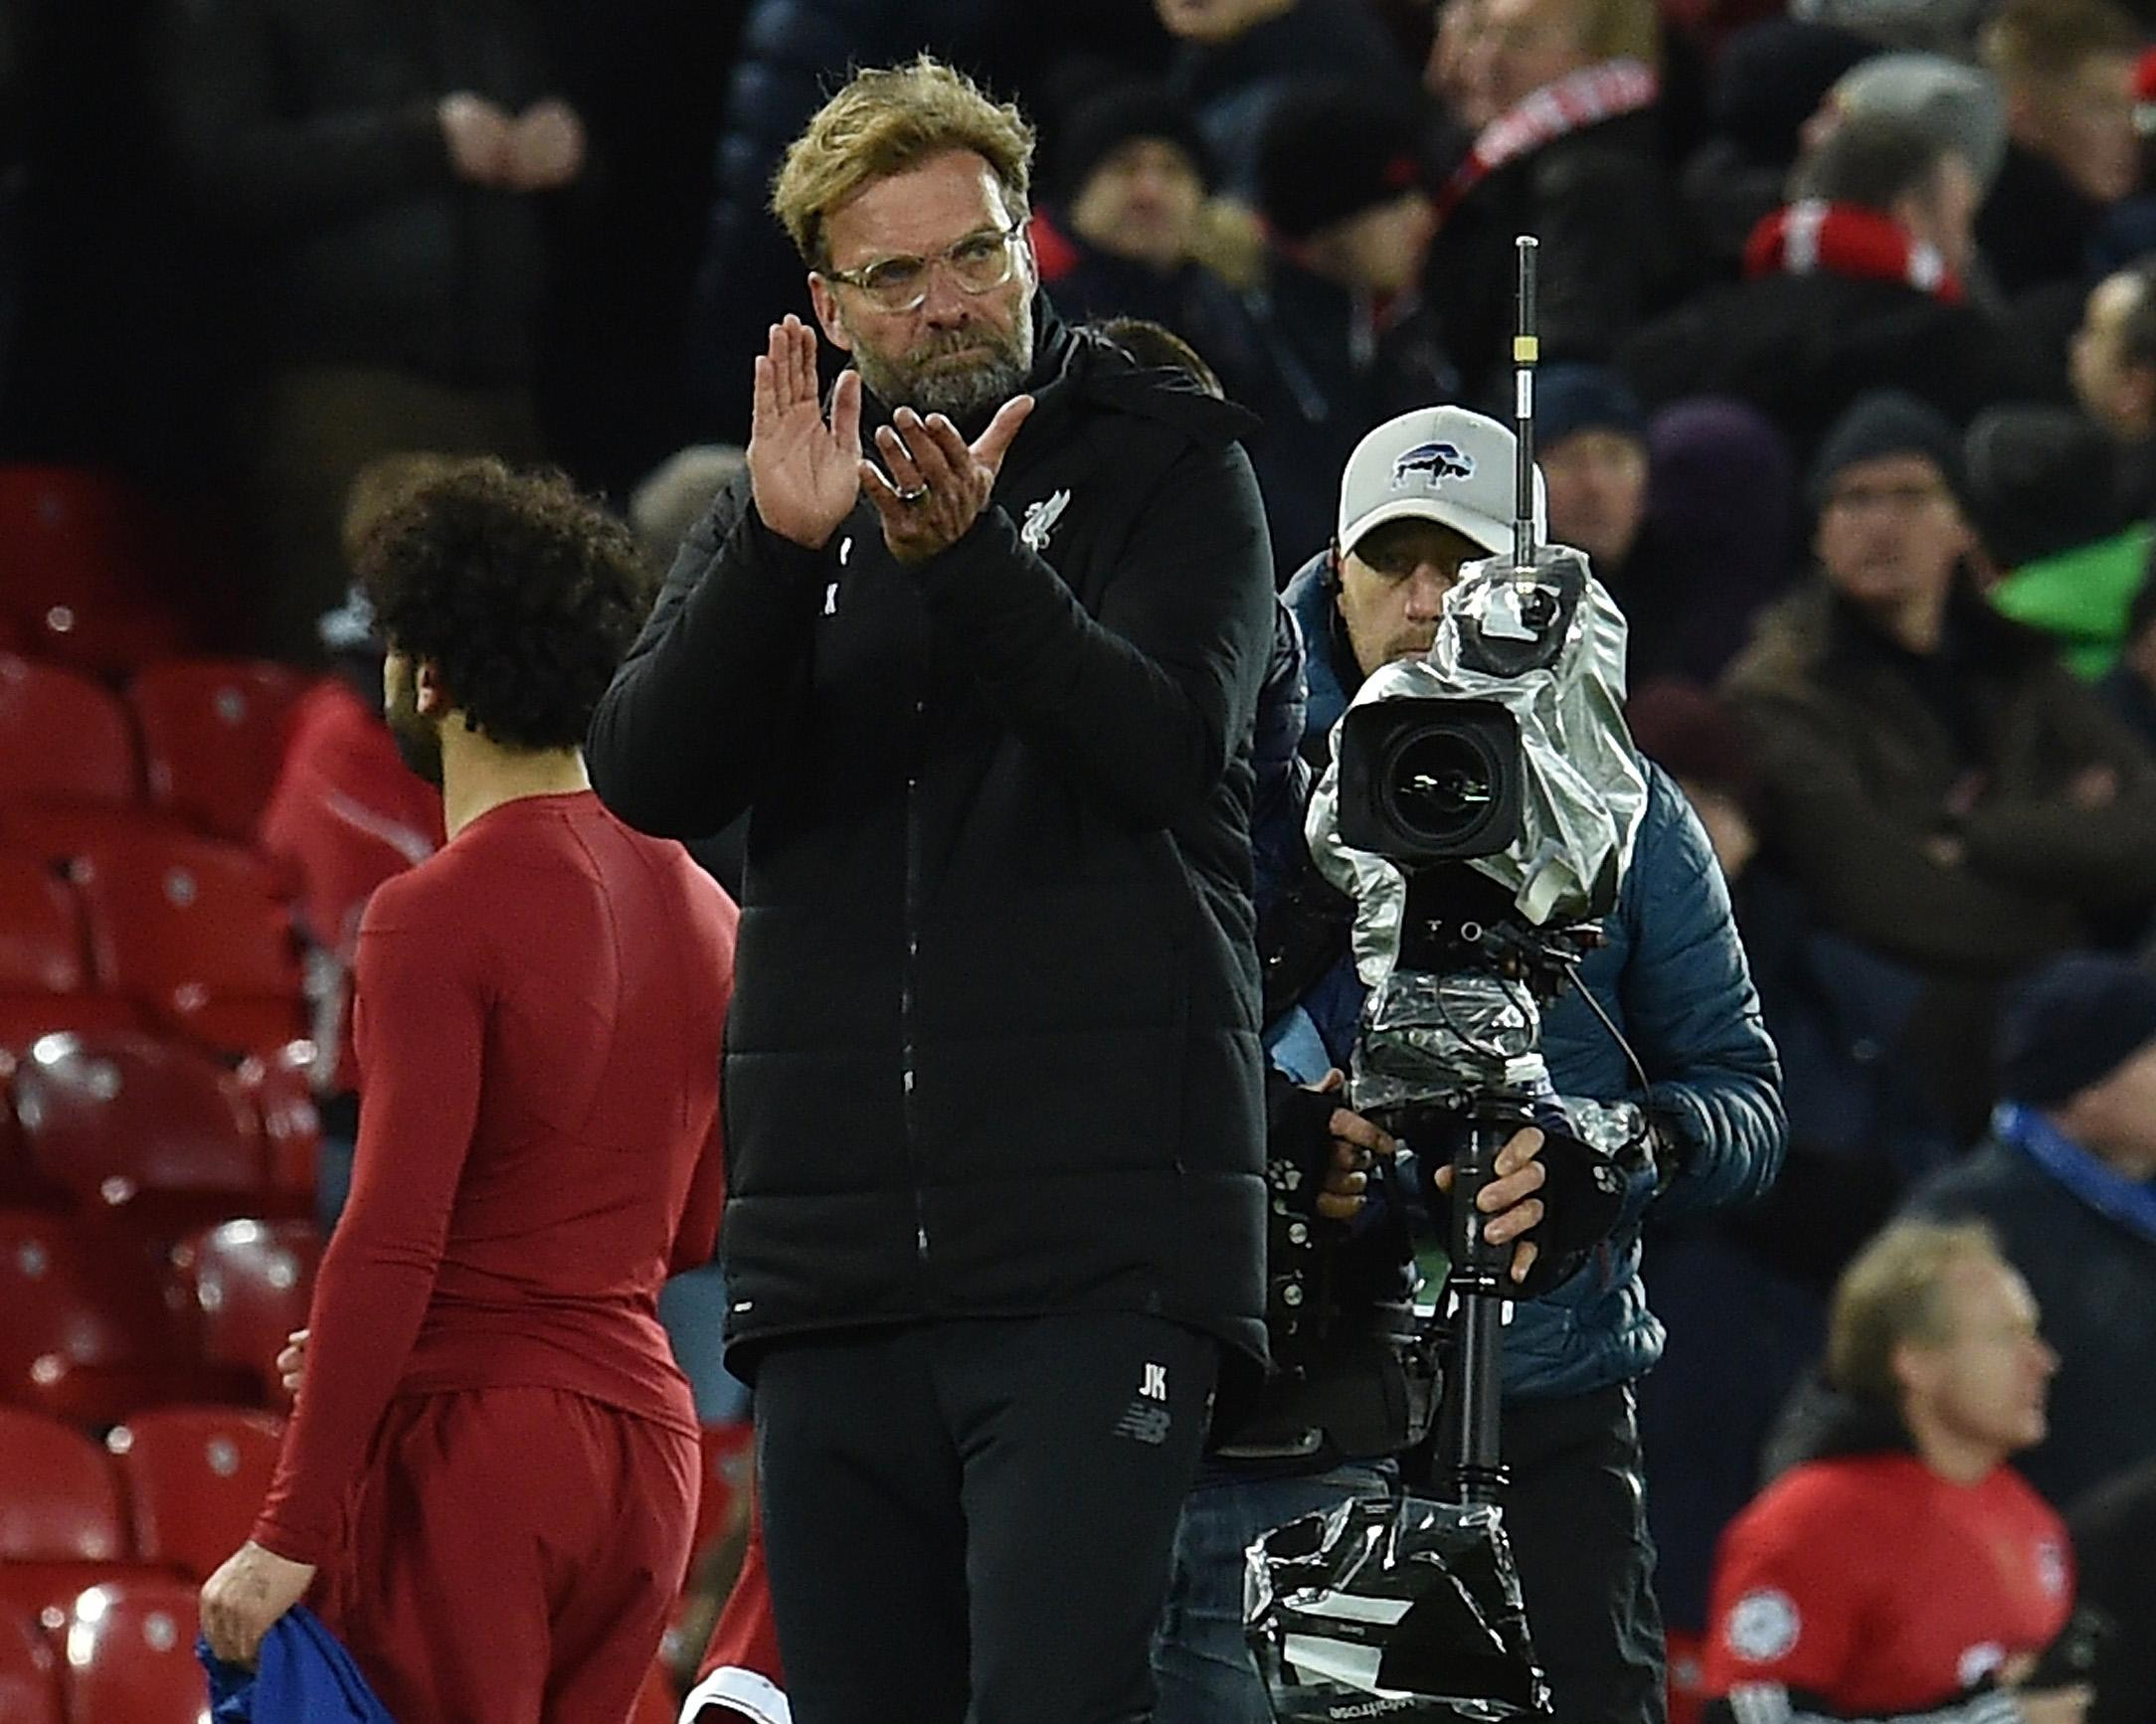 Jurgen Klopp believes delayed Adam Lallana substitution would have prevented Chelsea's late equaliser